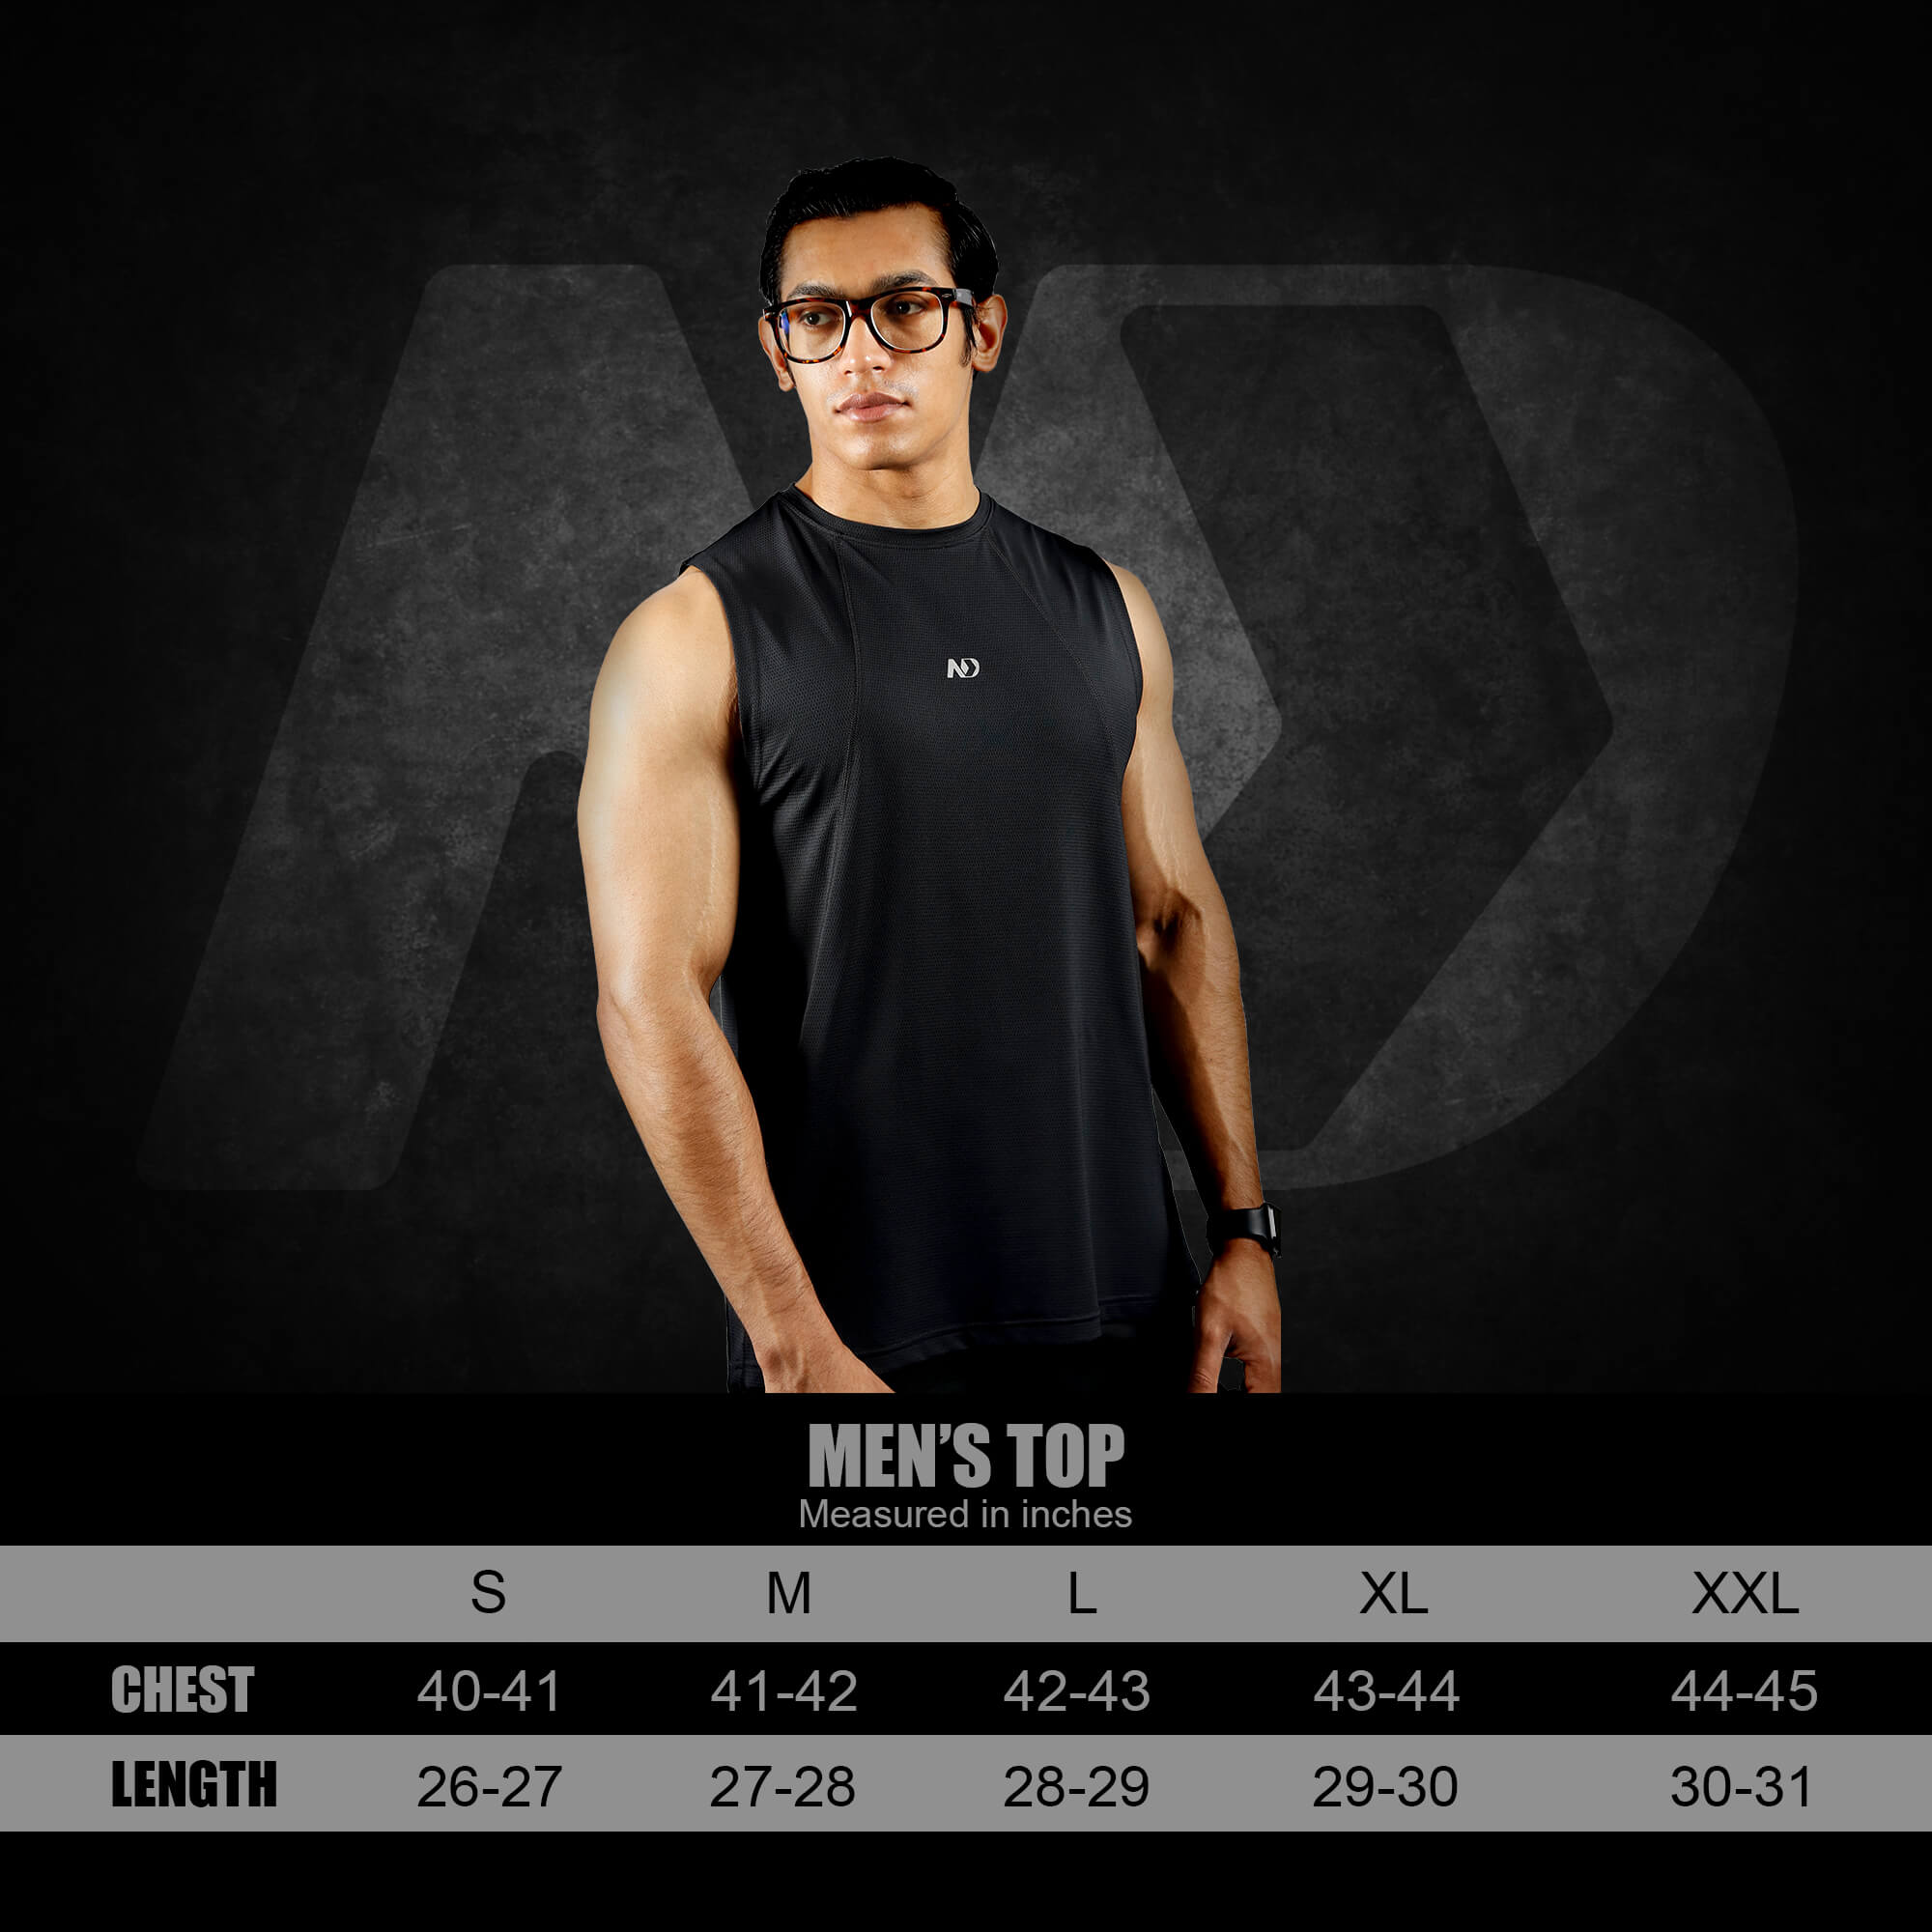 SIZE CHART - ND PERFORMANCE TANK TOP